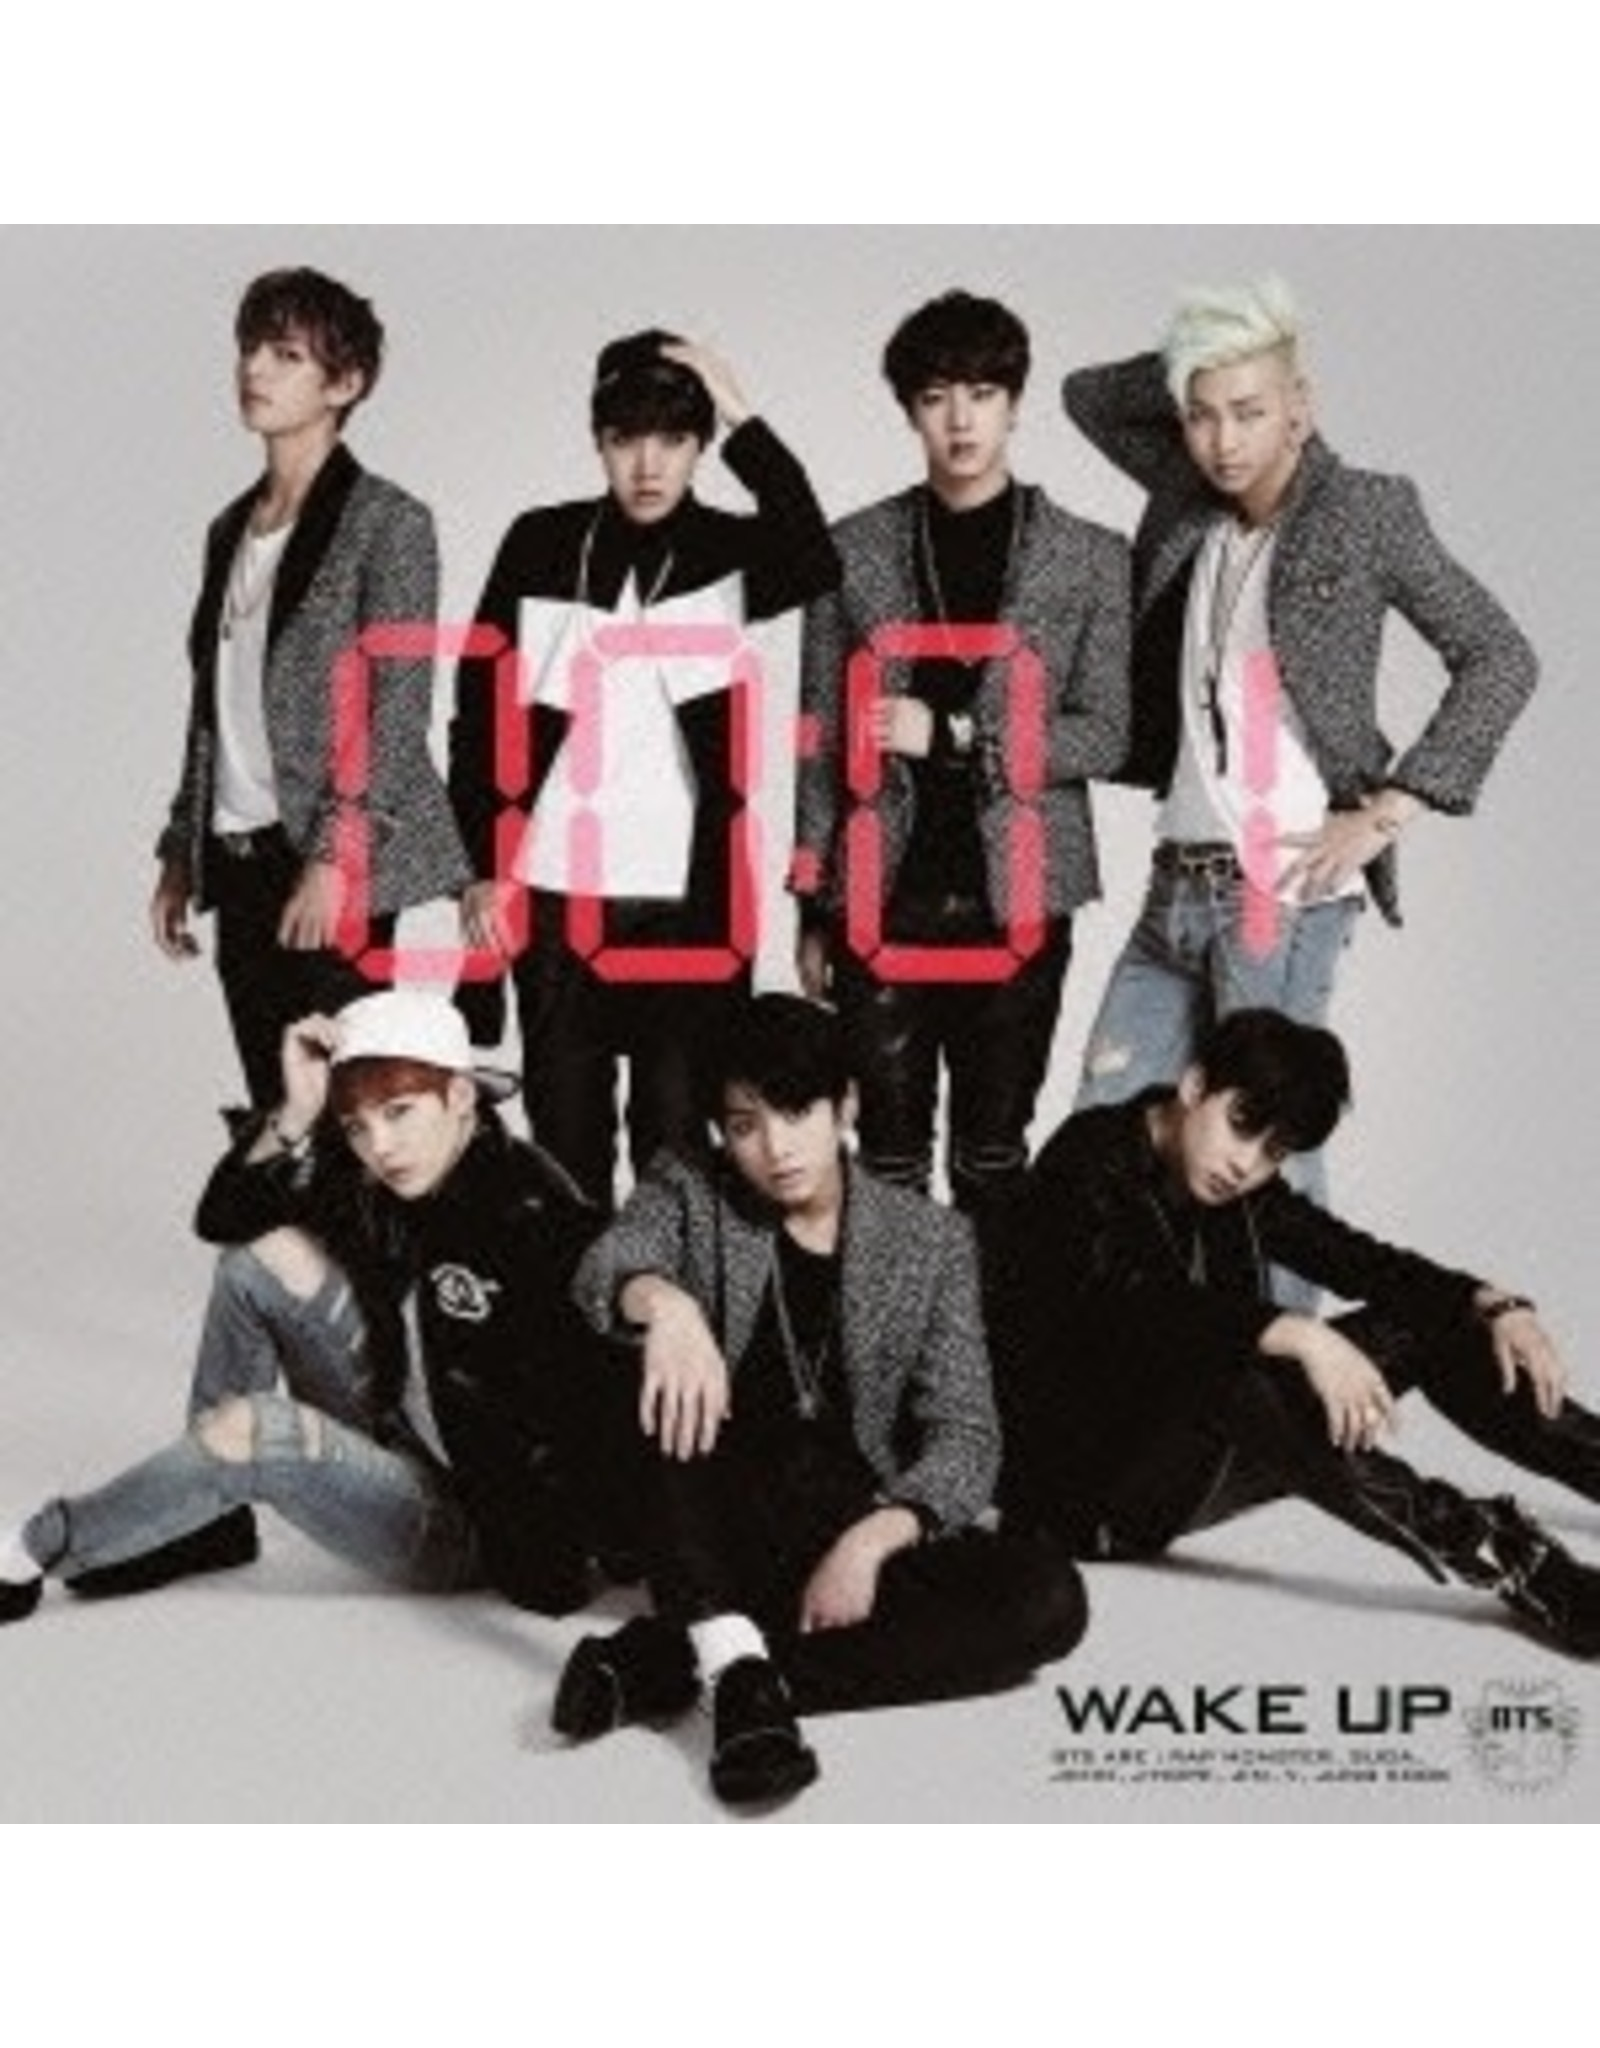 CANYON [CD]WAKE UP  [TRADING CARD FOR 1ST PRESSING ]